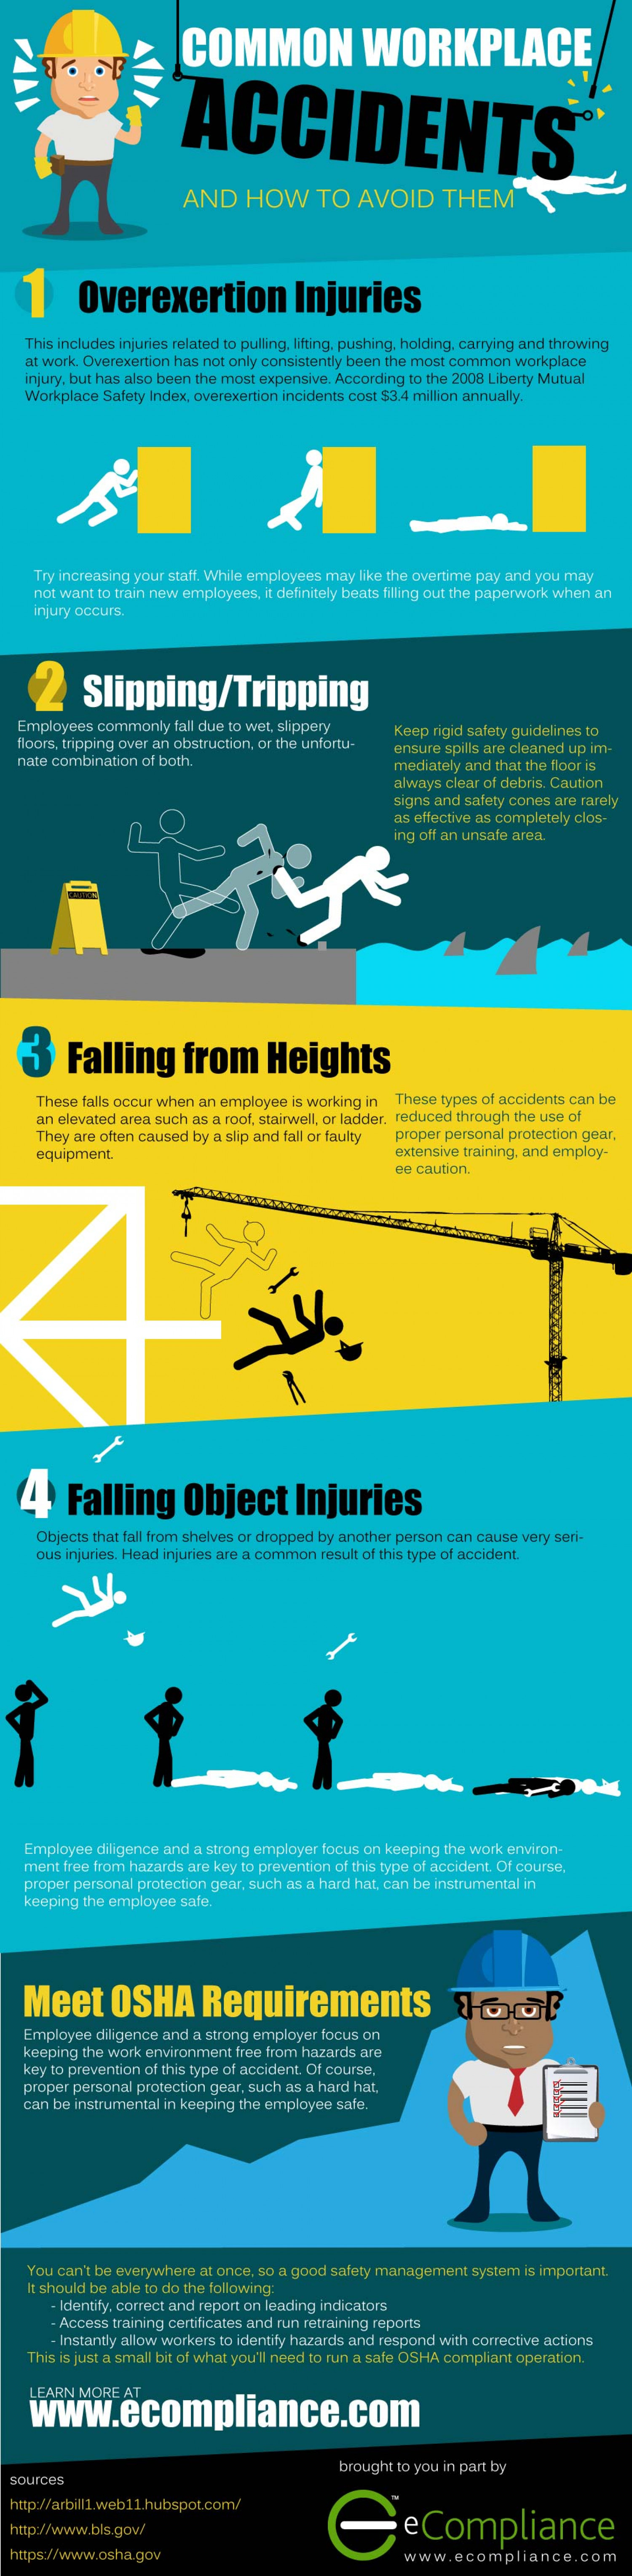 Common Workplace Accidents Infographic